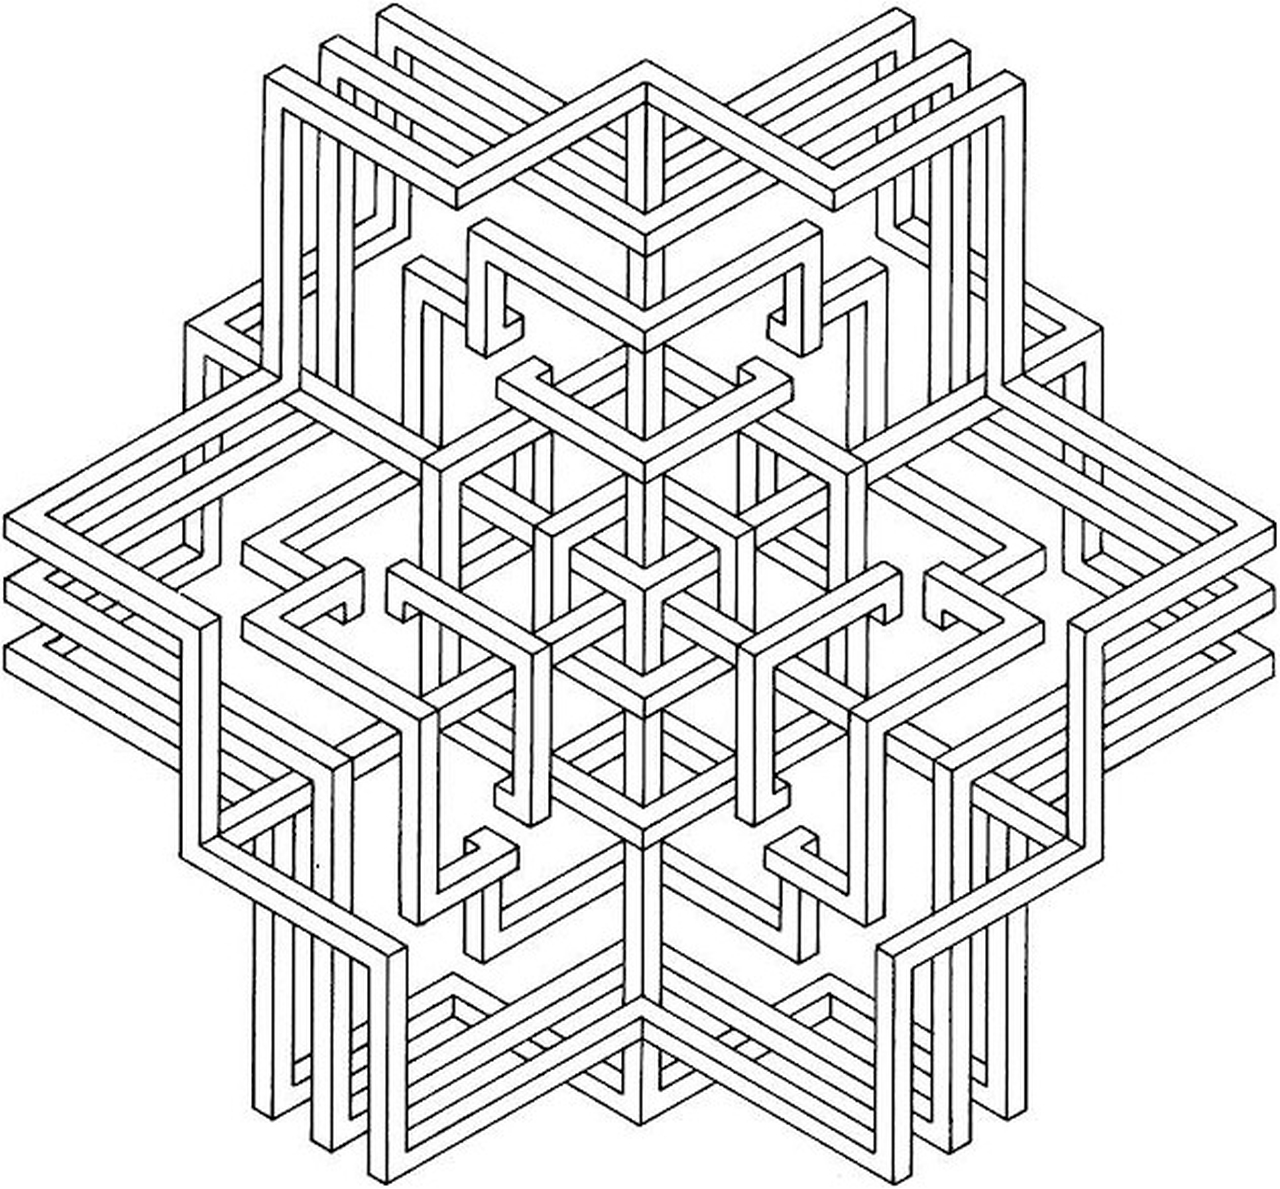 designs for coloring top 20 free printable pattern coloring pages online for designs coloring